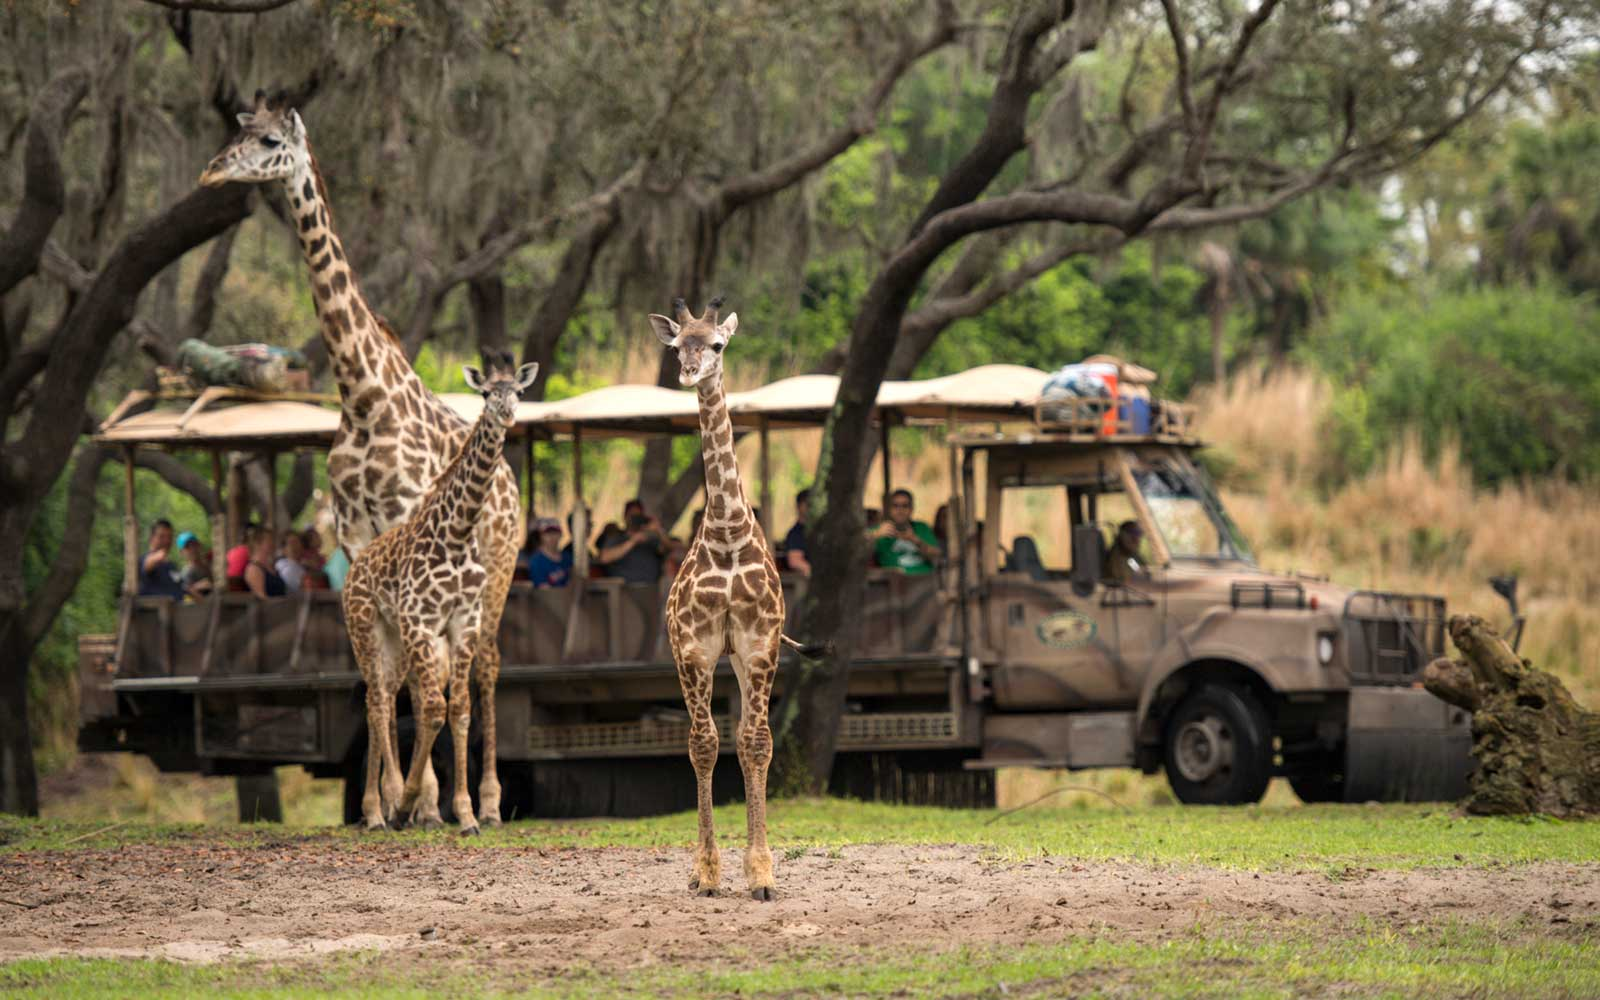 Walt Disney World's Animal Kingdom Giraffe Family